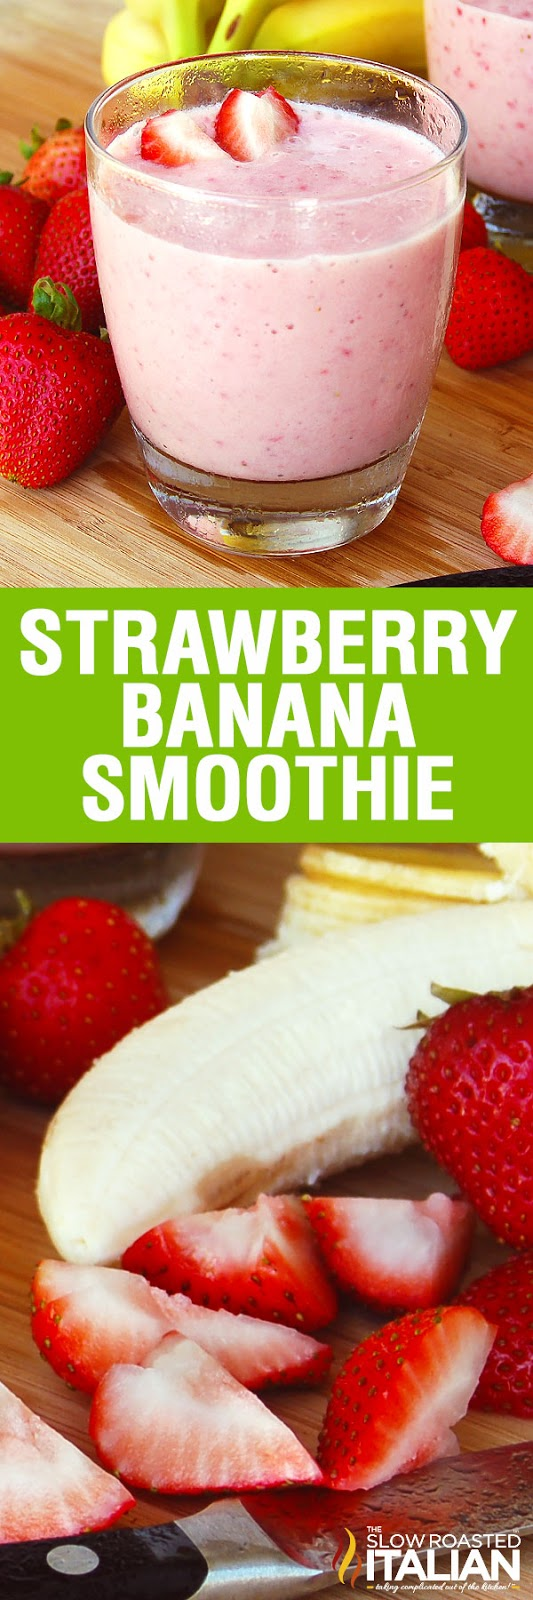 Strawberry Banana Smoothie is our favorite breakfast drink recipe! It is a power-packed shake loaded with protein and fresh fruit.  It is a simple recipe. With just 5 ingredients and a few minutes, you can have this fantastic Strawberry Banana Smoothie at home or on the go.